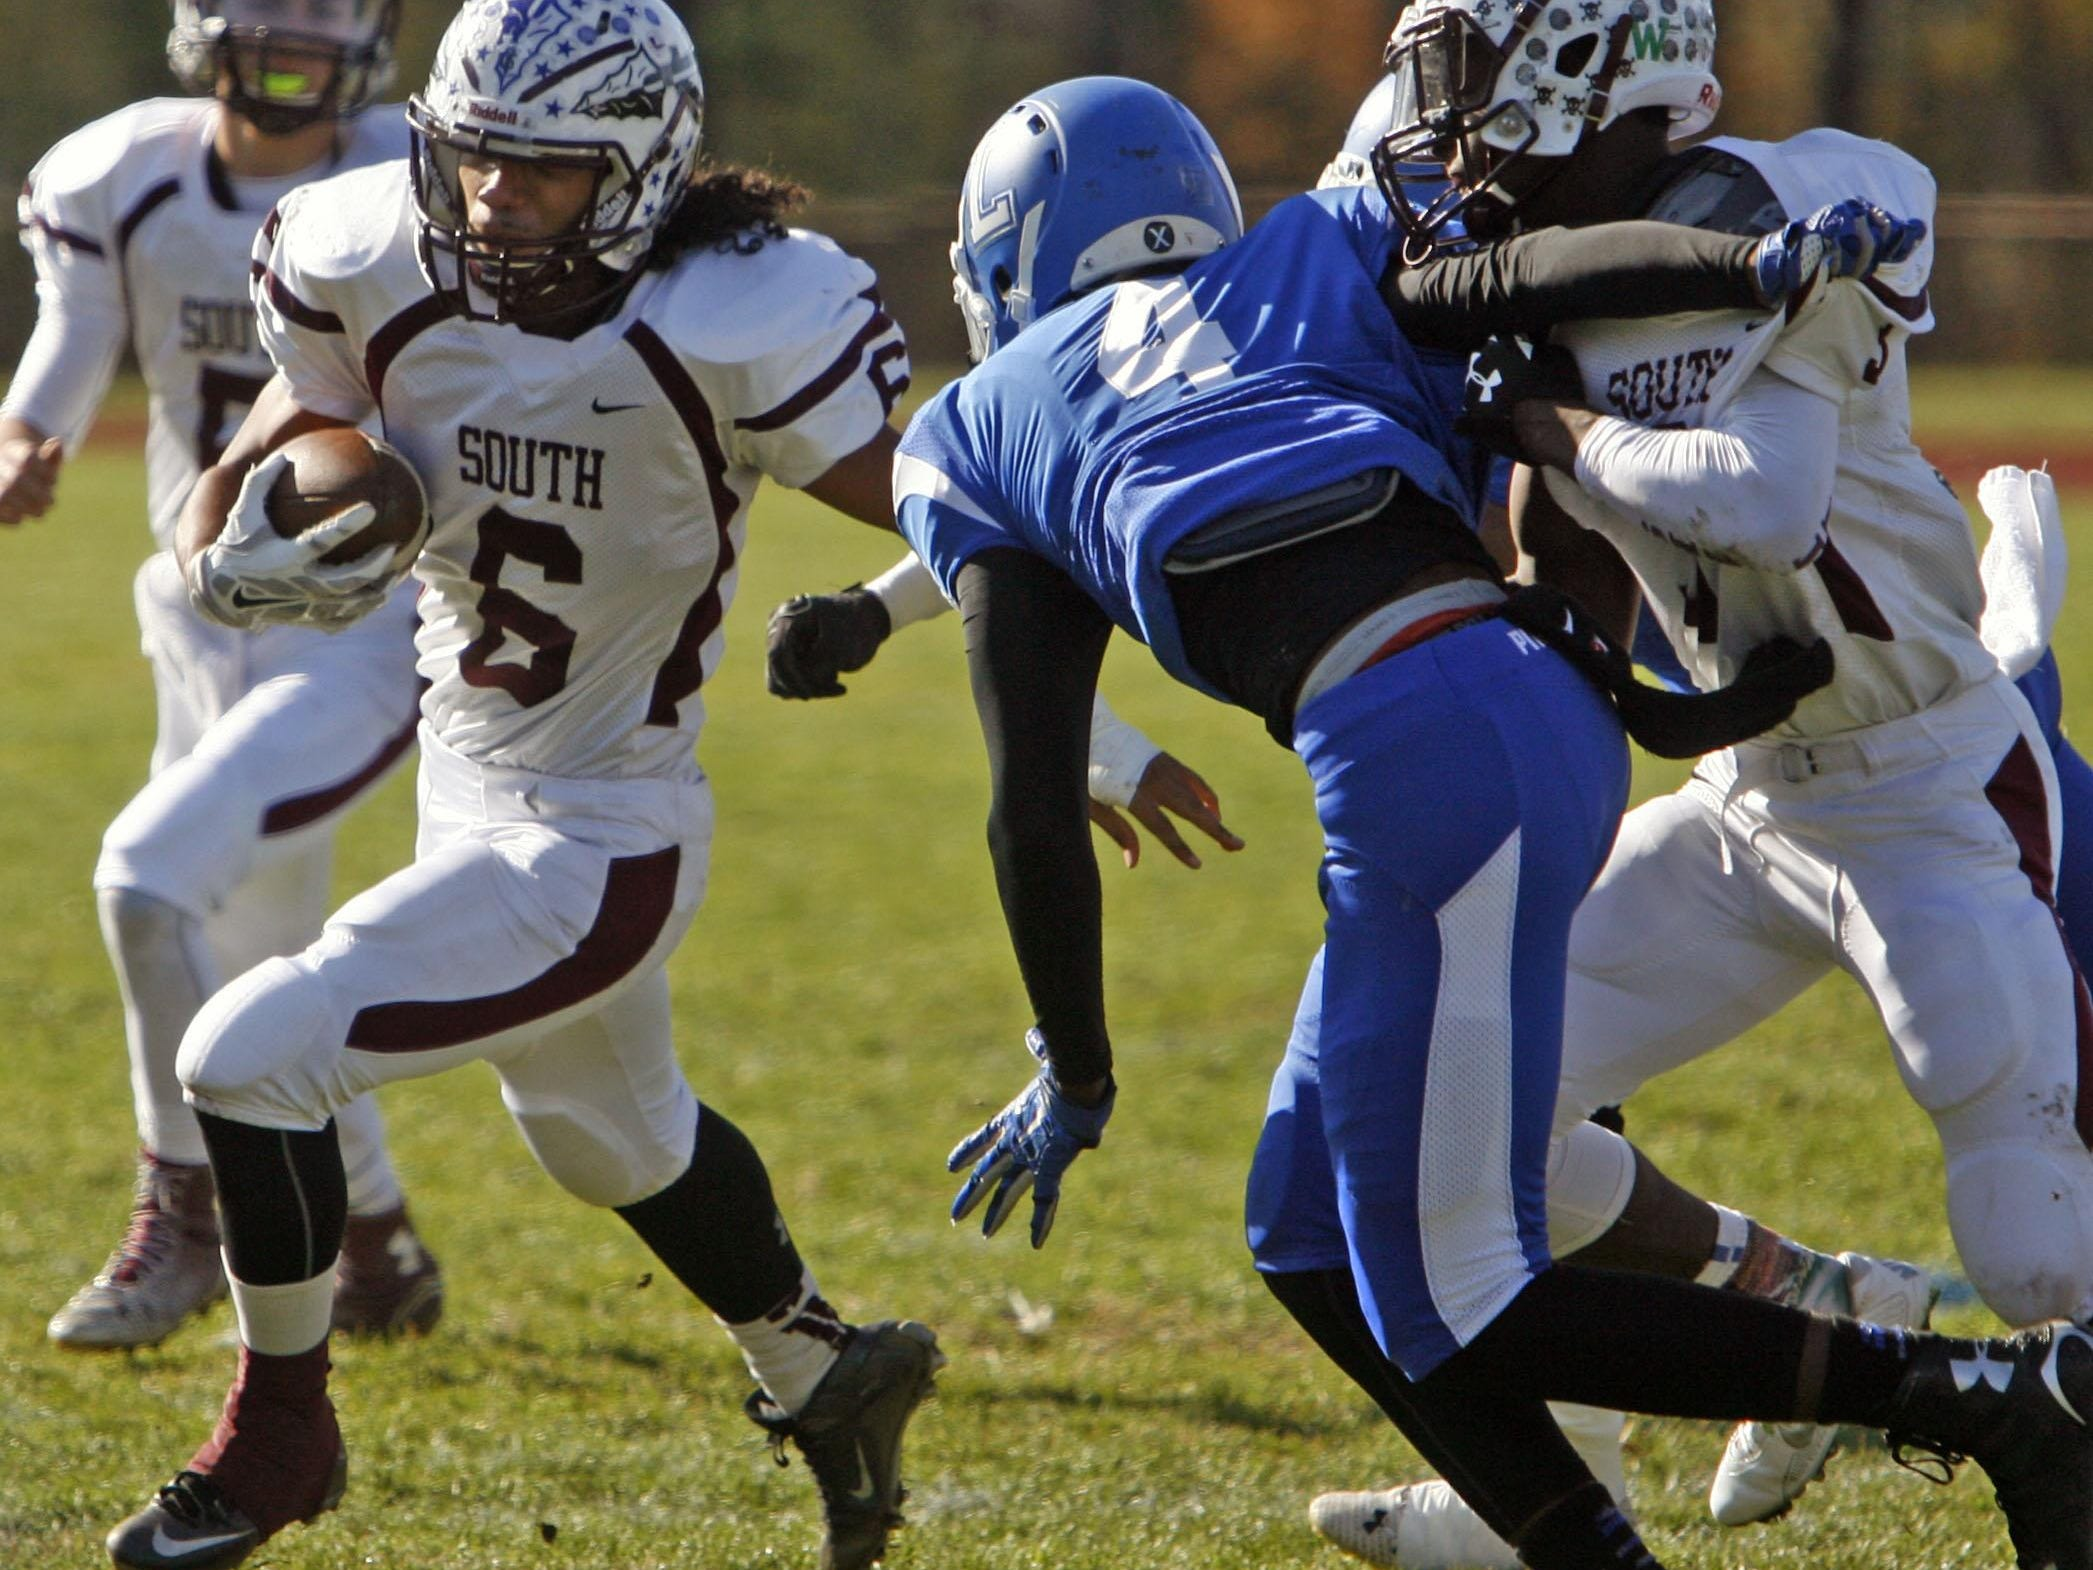 Toms River South's Malcolm Gillespie (6), left, gains yardage against Lakewood at Lakewood High School Nov. 26, 2015. Photo by Vincent DiSalvio / Special to The ASBURY PARK PRESS